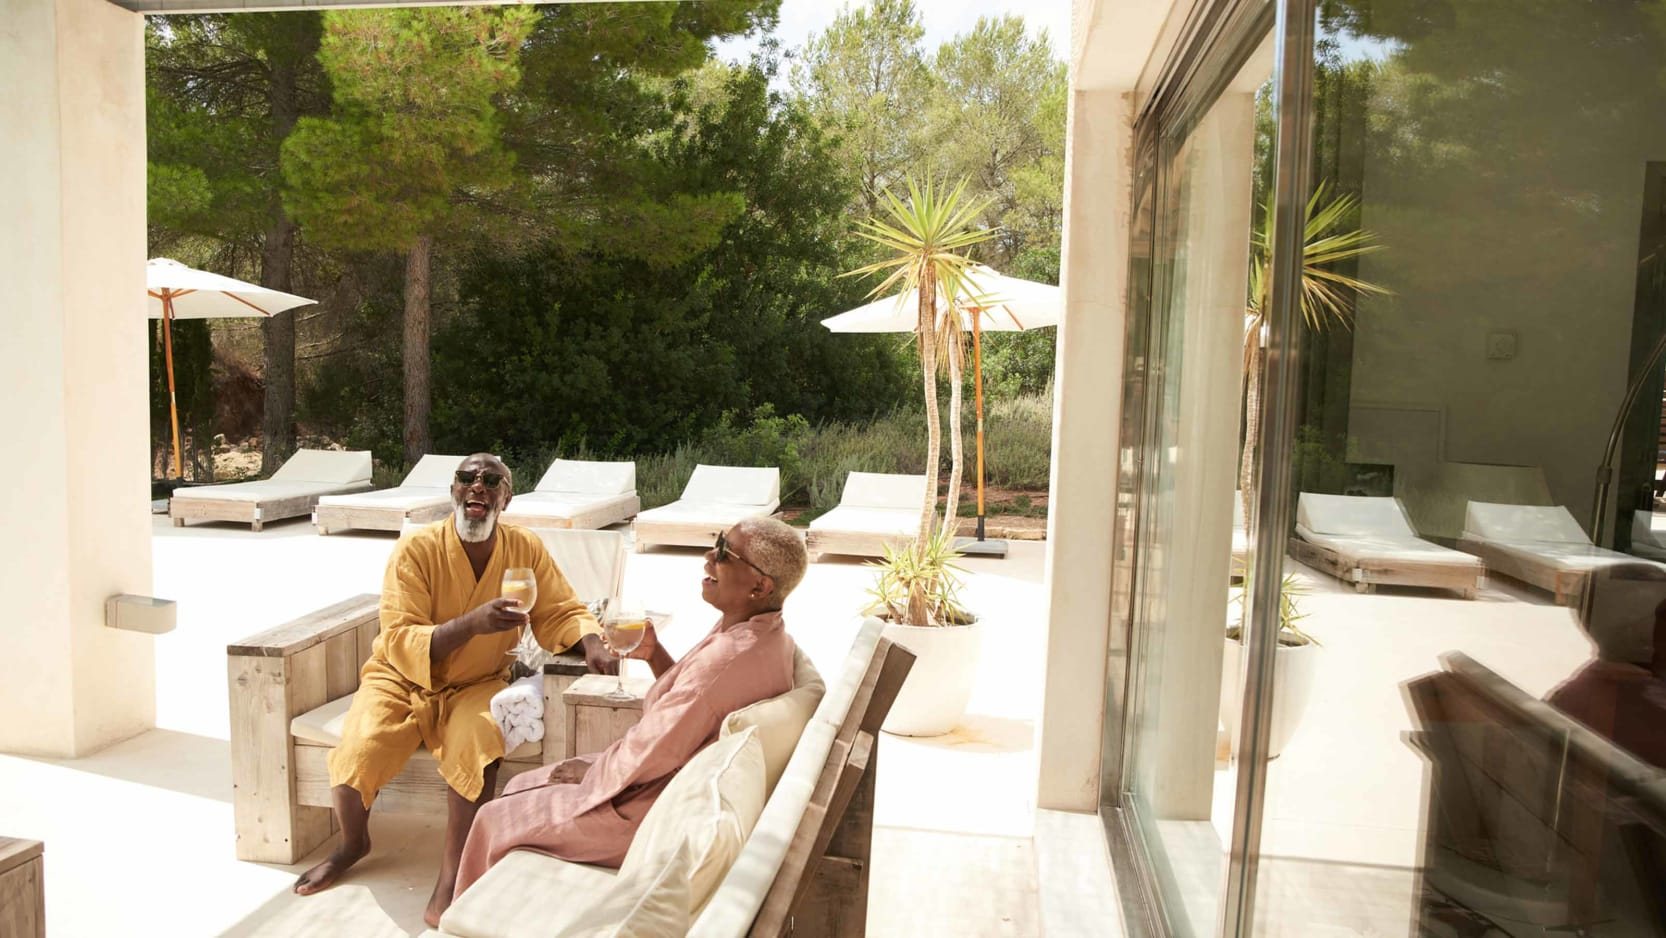 A senior couple sitting on a pool desk at a spa, wearing bathrobes, drinking wine and laughing.